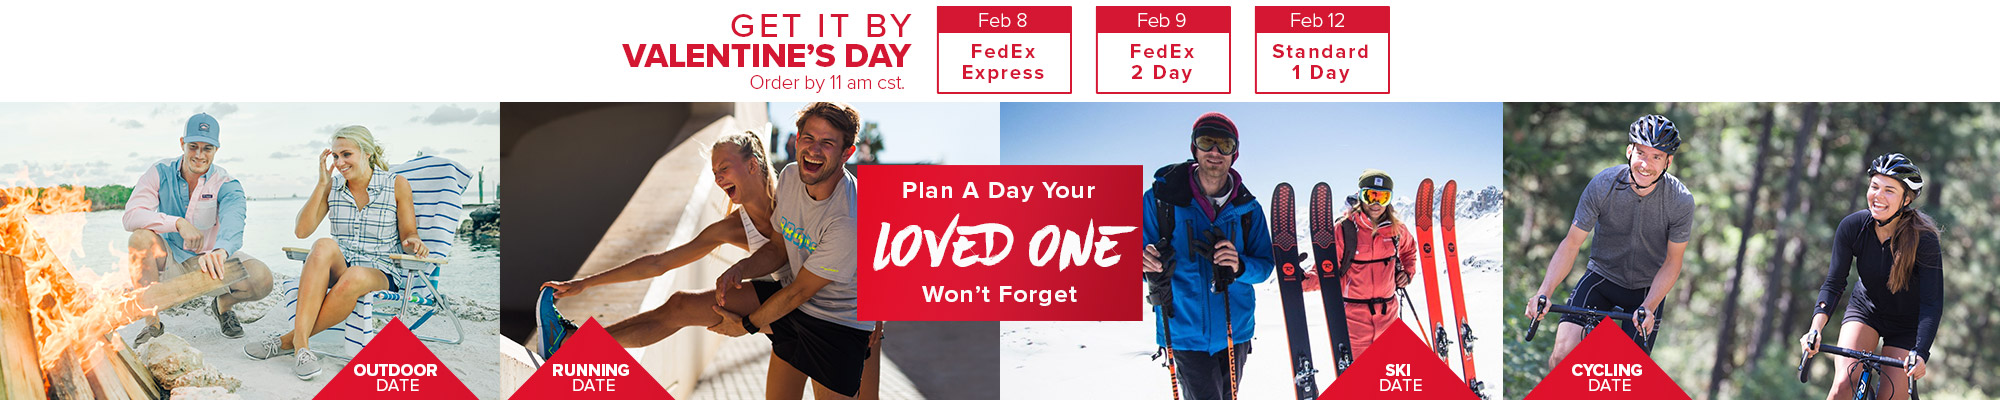 Plan a day your loved one wont forget.